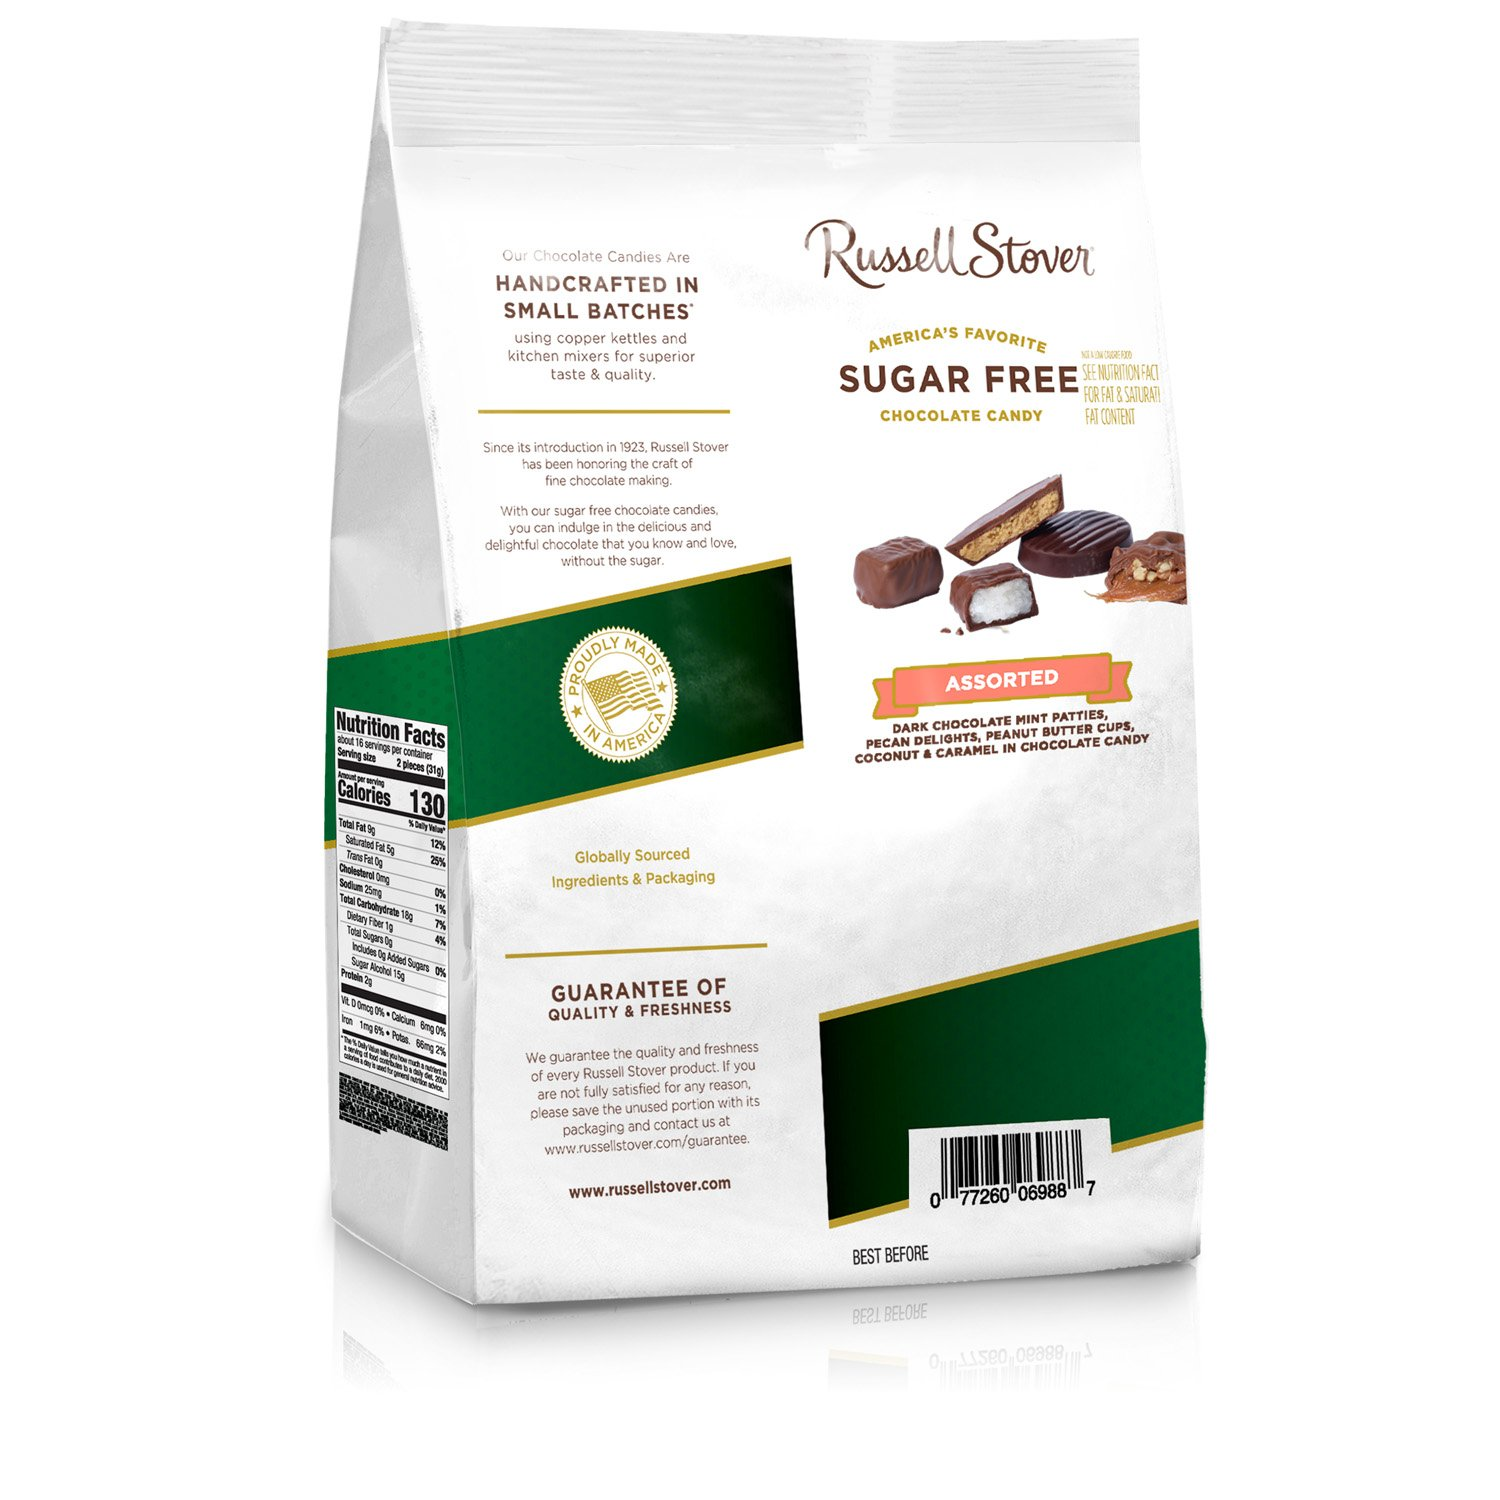 Russell Stover Sugar Free Assortment, 17.85 Ounce Bag, 4 Count by Russell Stover (Image #3)